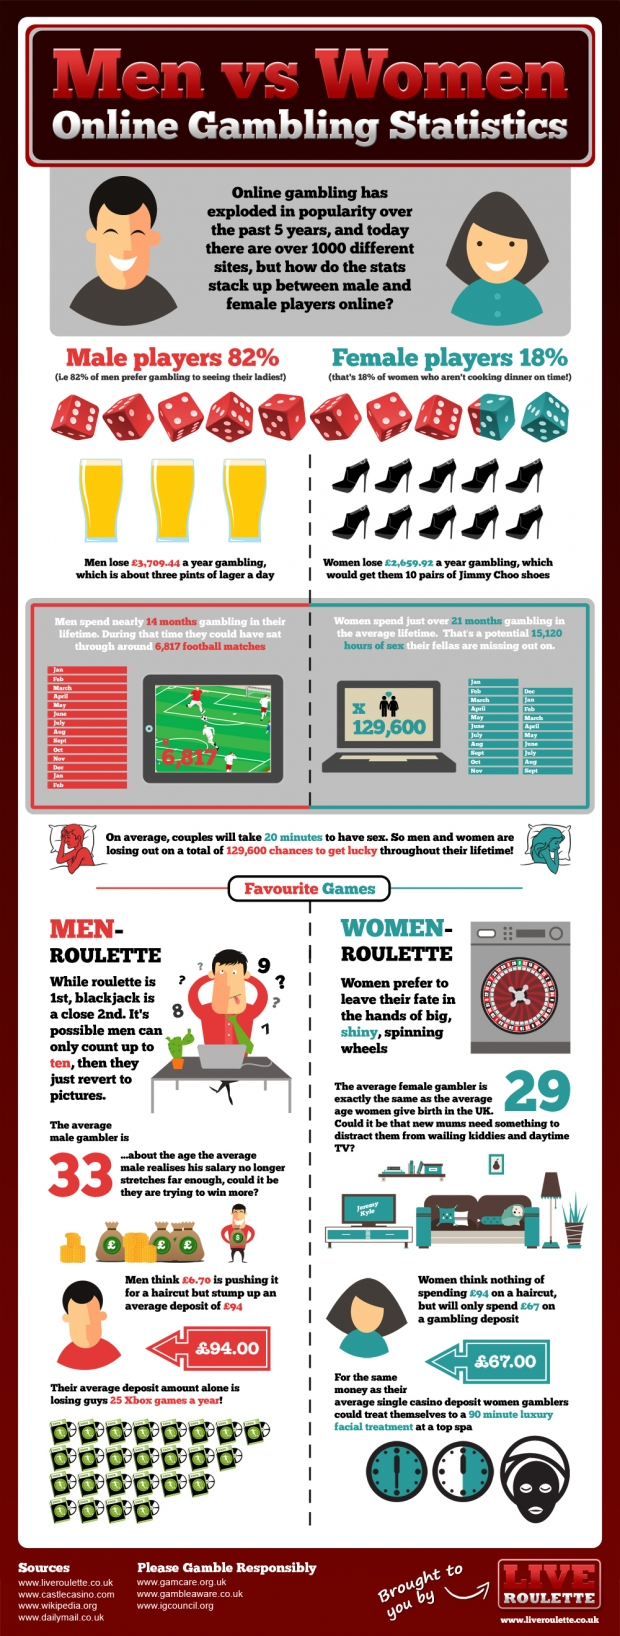 men-vs-women-online-gambling-statistics-620x1636.jpg